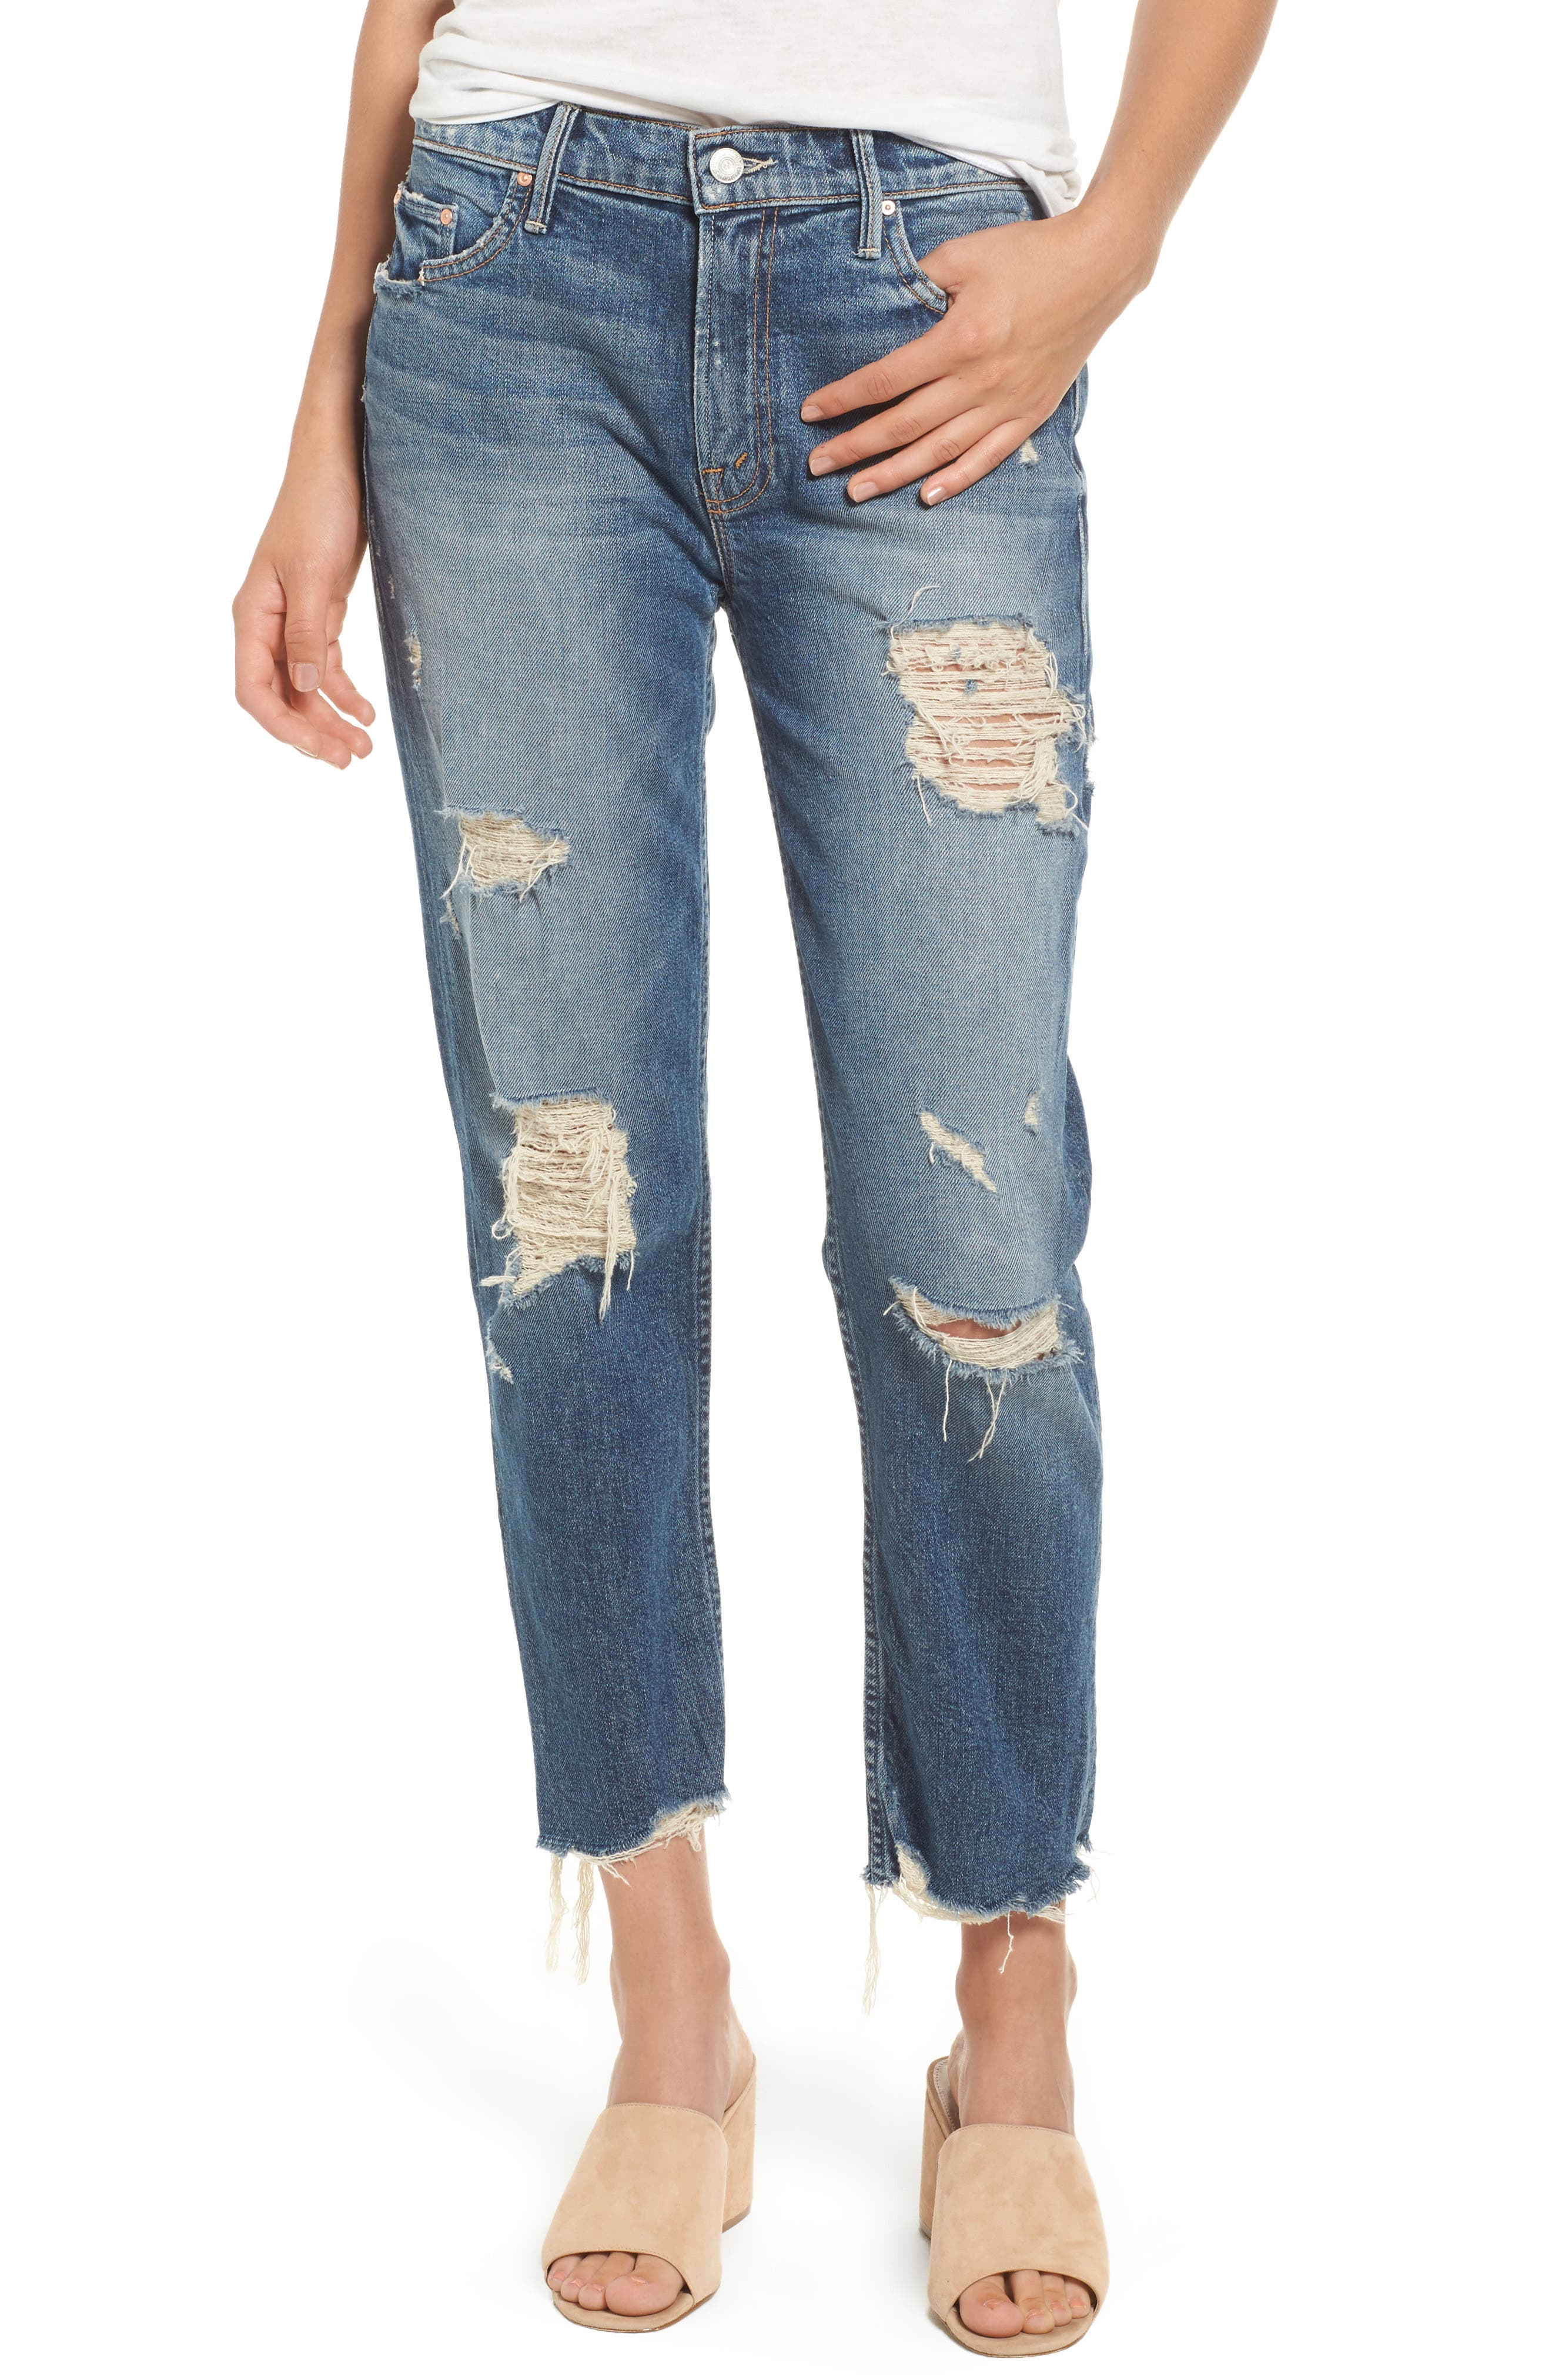 Alternate Image 1 Selected - MOTHER The Sinner Ripped Ankle Straight Leg Jeans (Ice Scream You Scream)